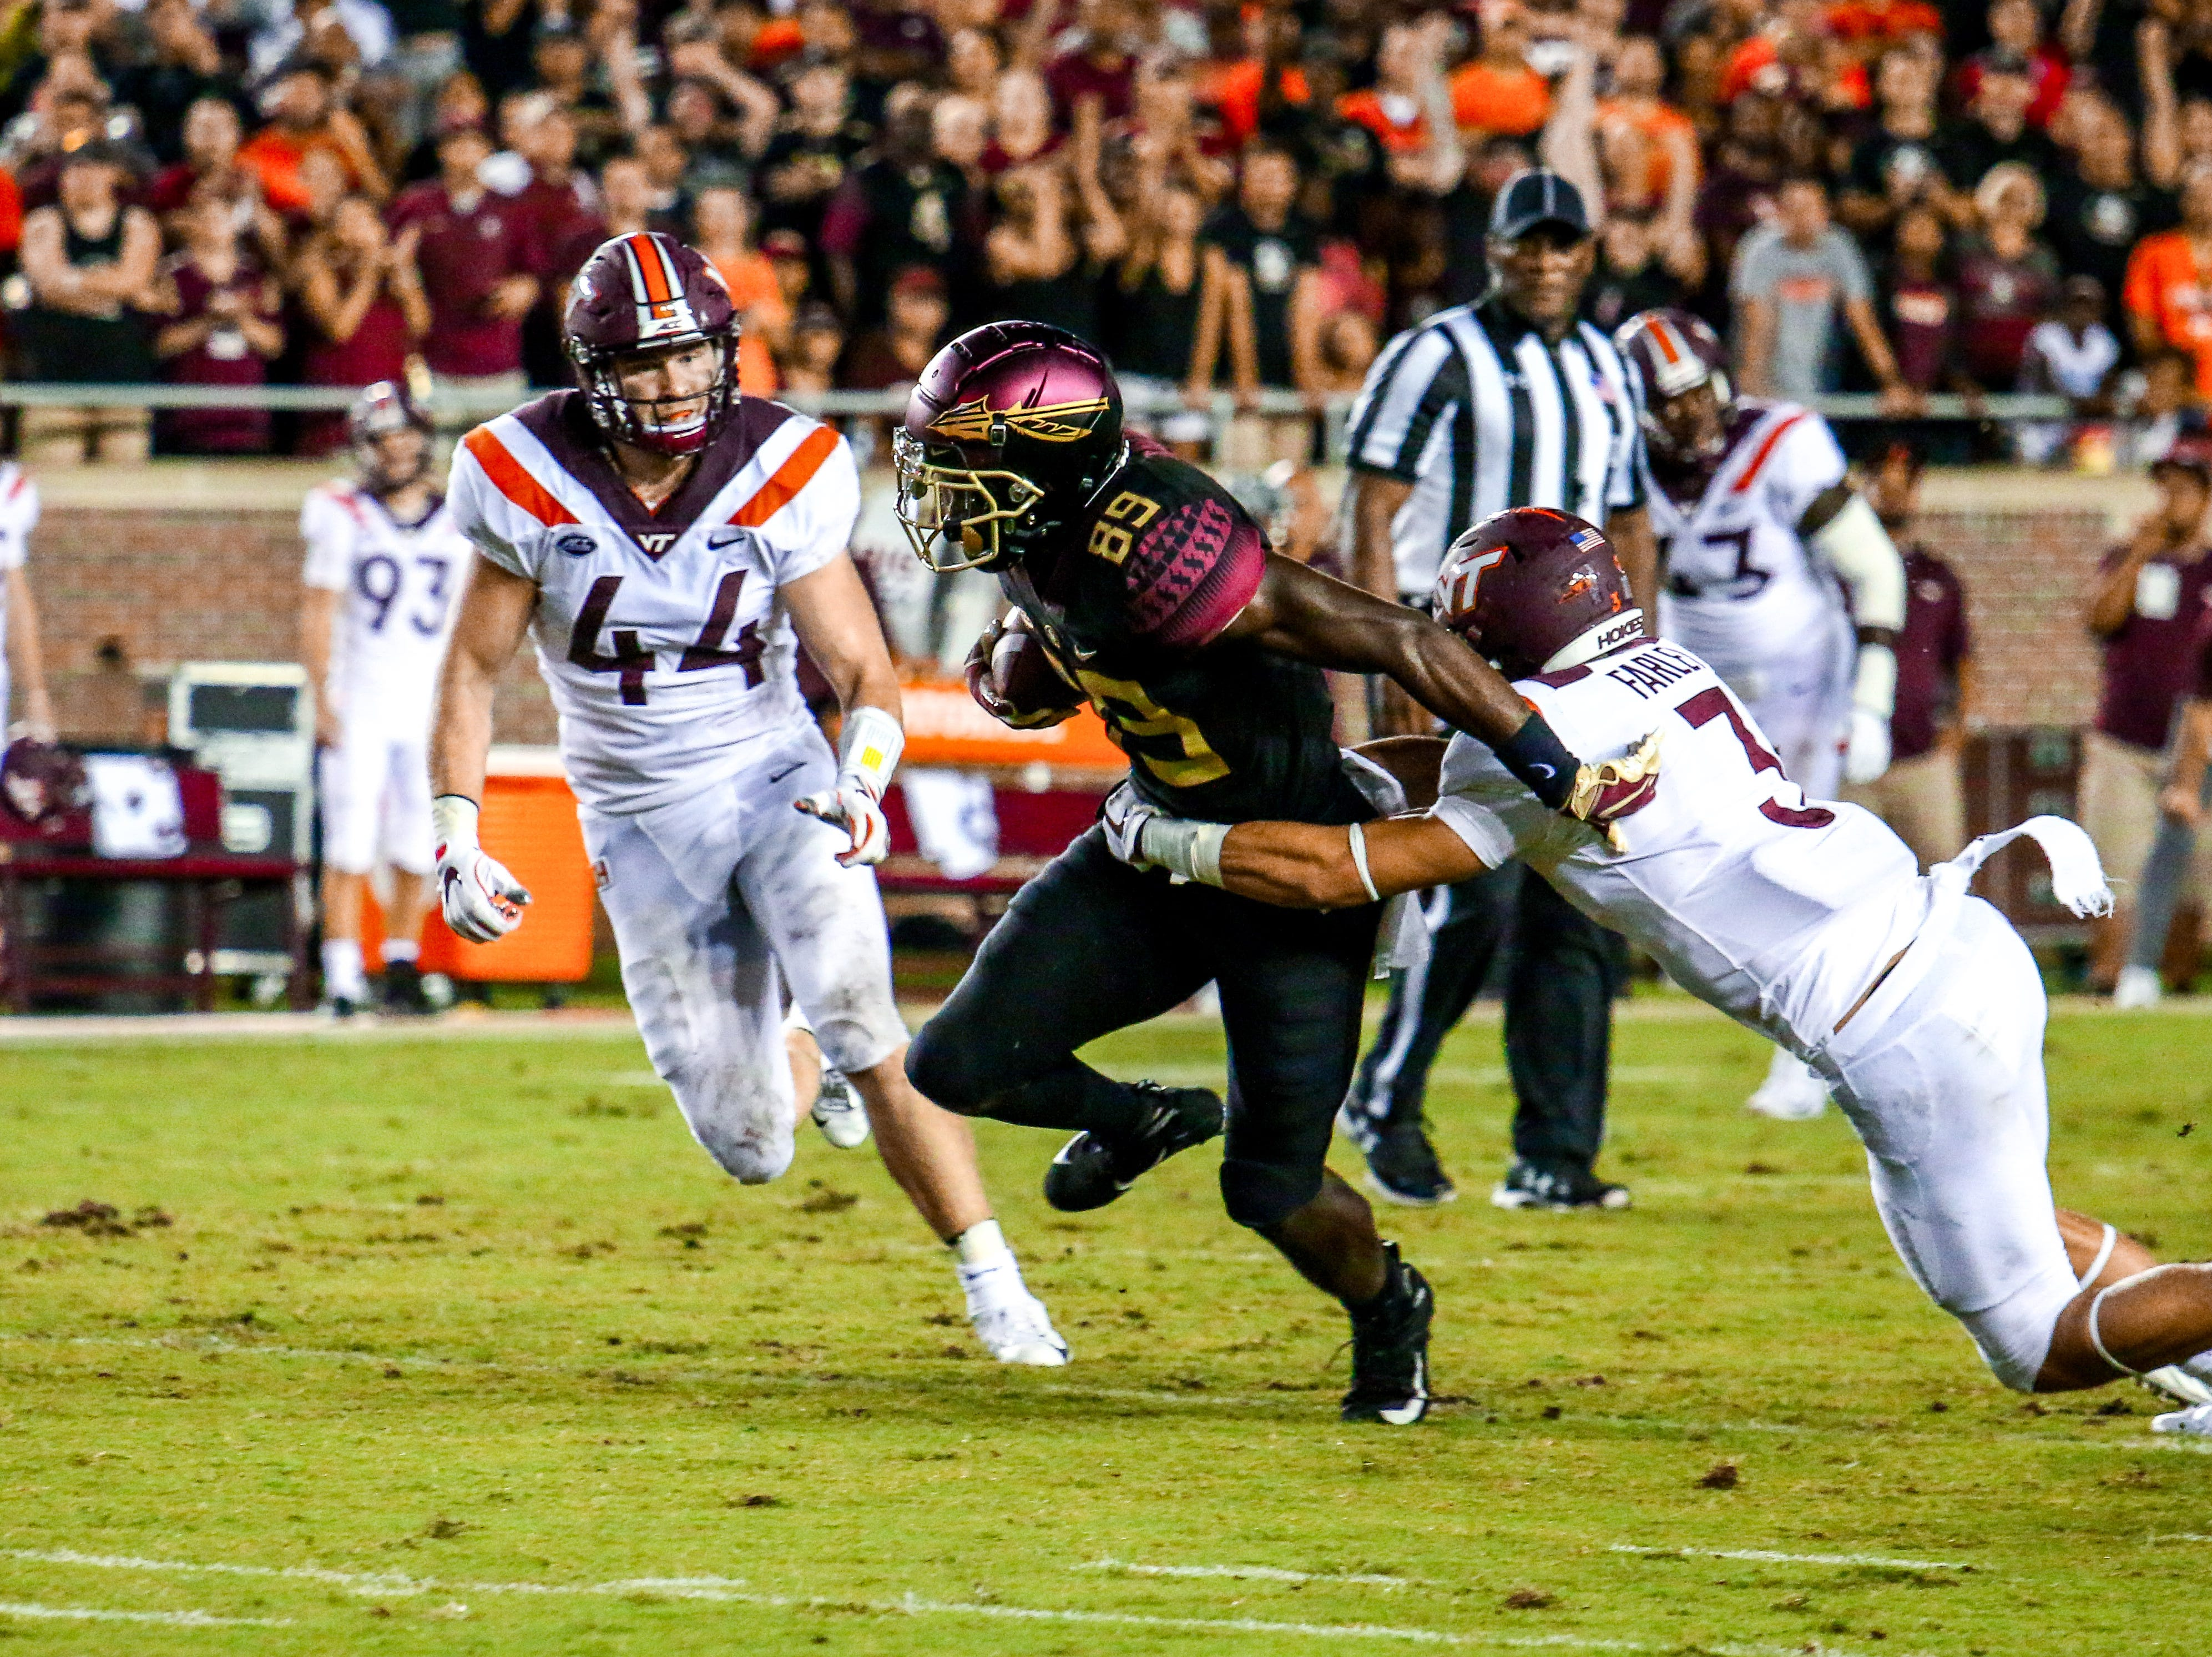 Despite some bursts of success from players like Keith Gavin (89), FSU's offense had a difficult time getting things rolling against Virginia Tech. The struggles would continue all night long on Monday, September 3rd at Doak Campbell Stadium.